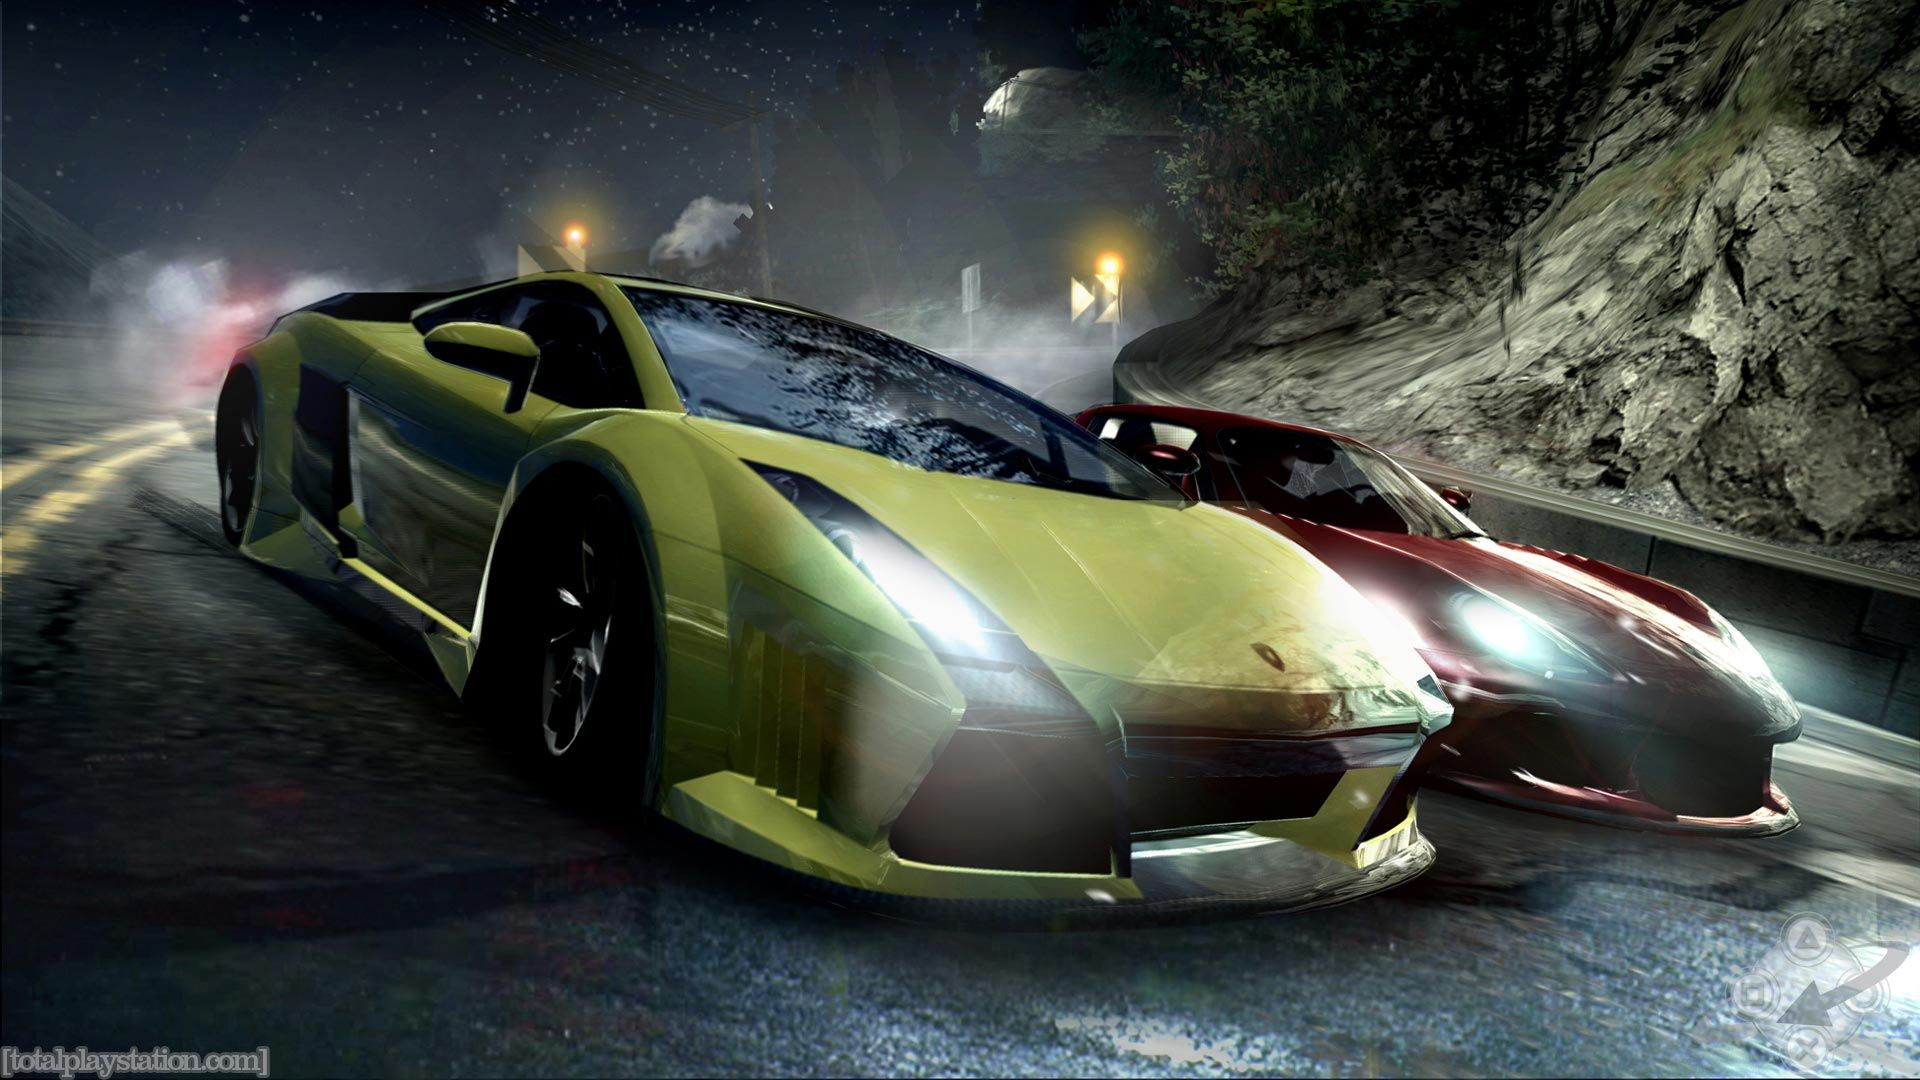 Need For Speed Carbon Girl 2 Wallpapers HD Wal 13891 Wallpaper